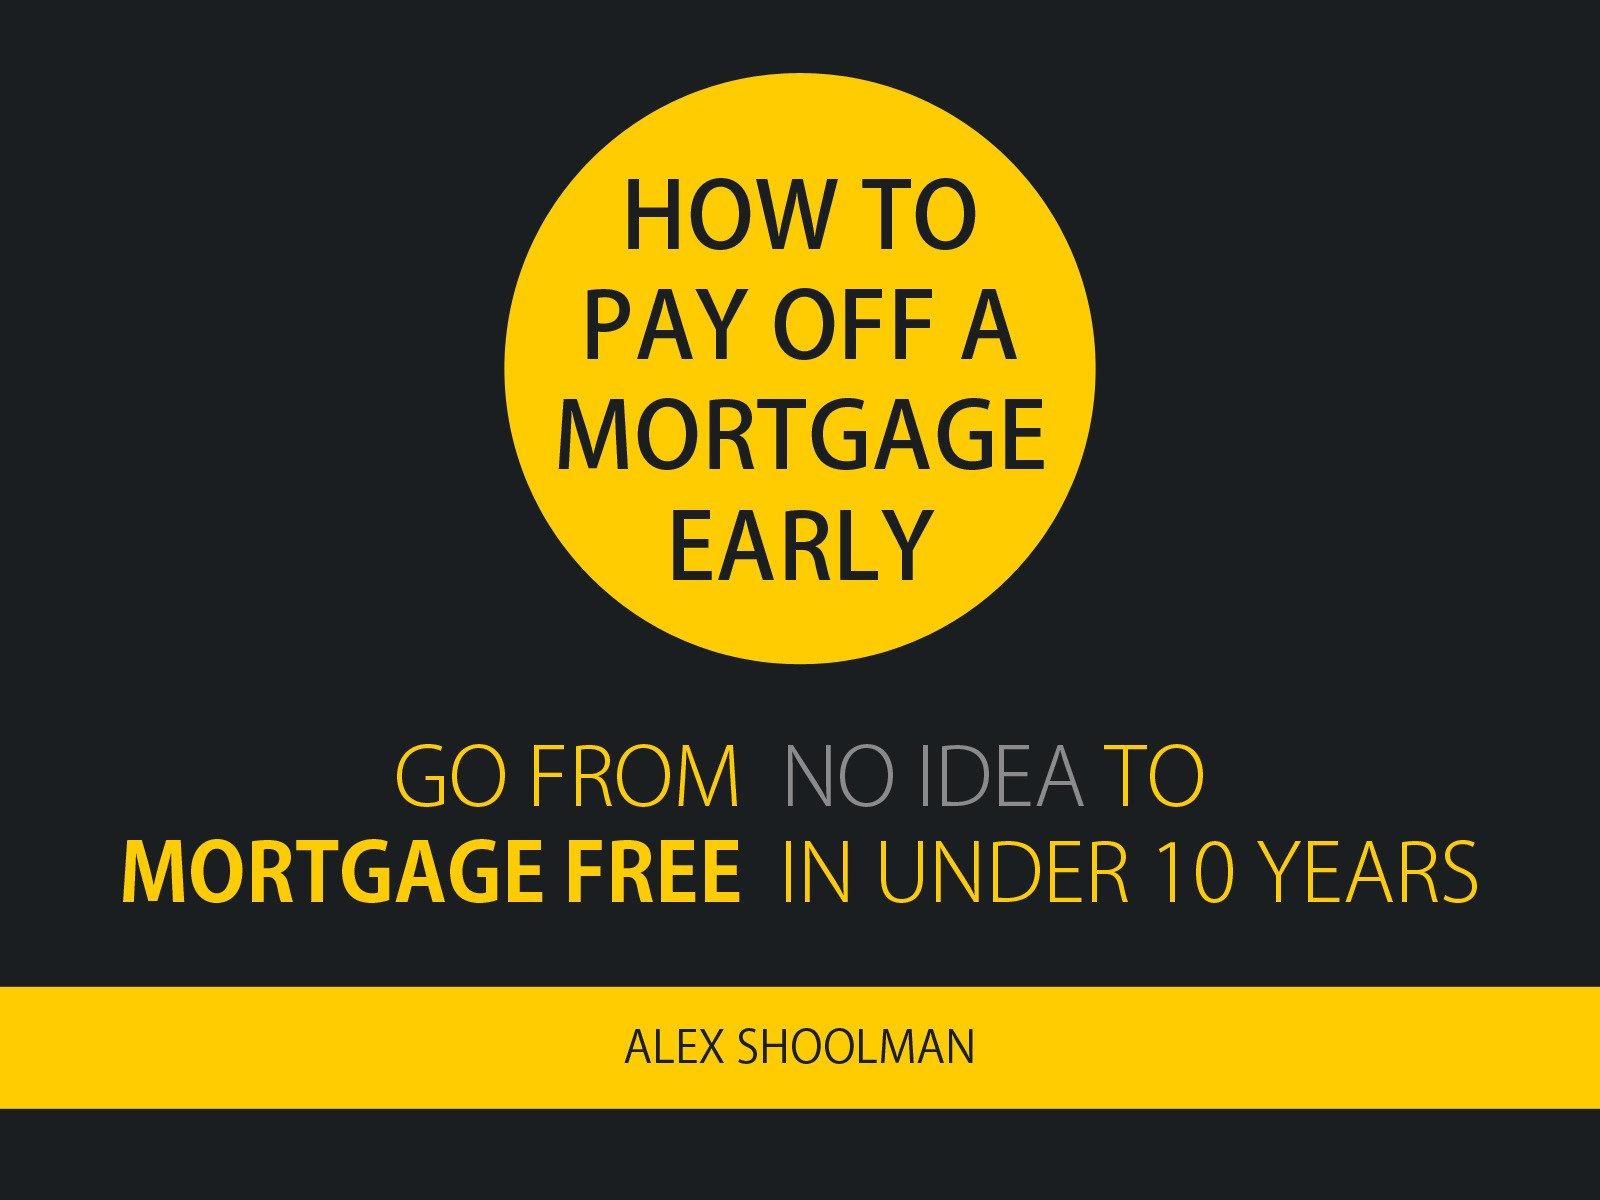 How To Pay Off A Mortgage Early